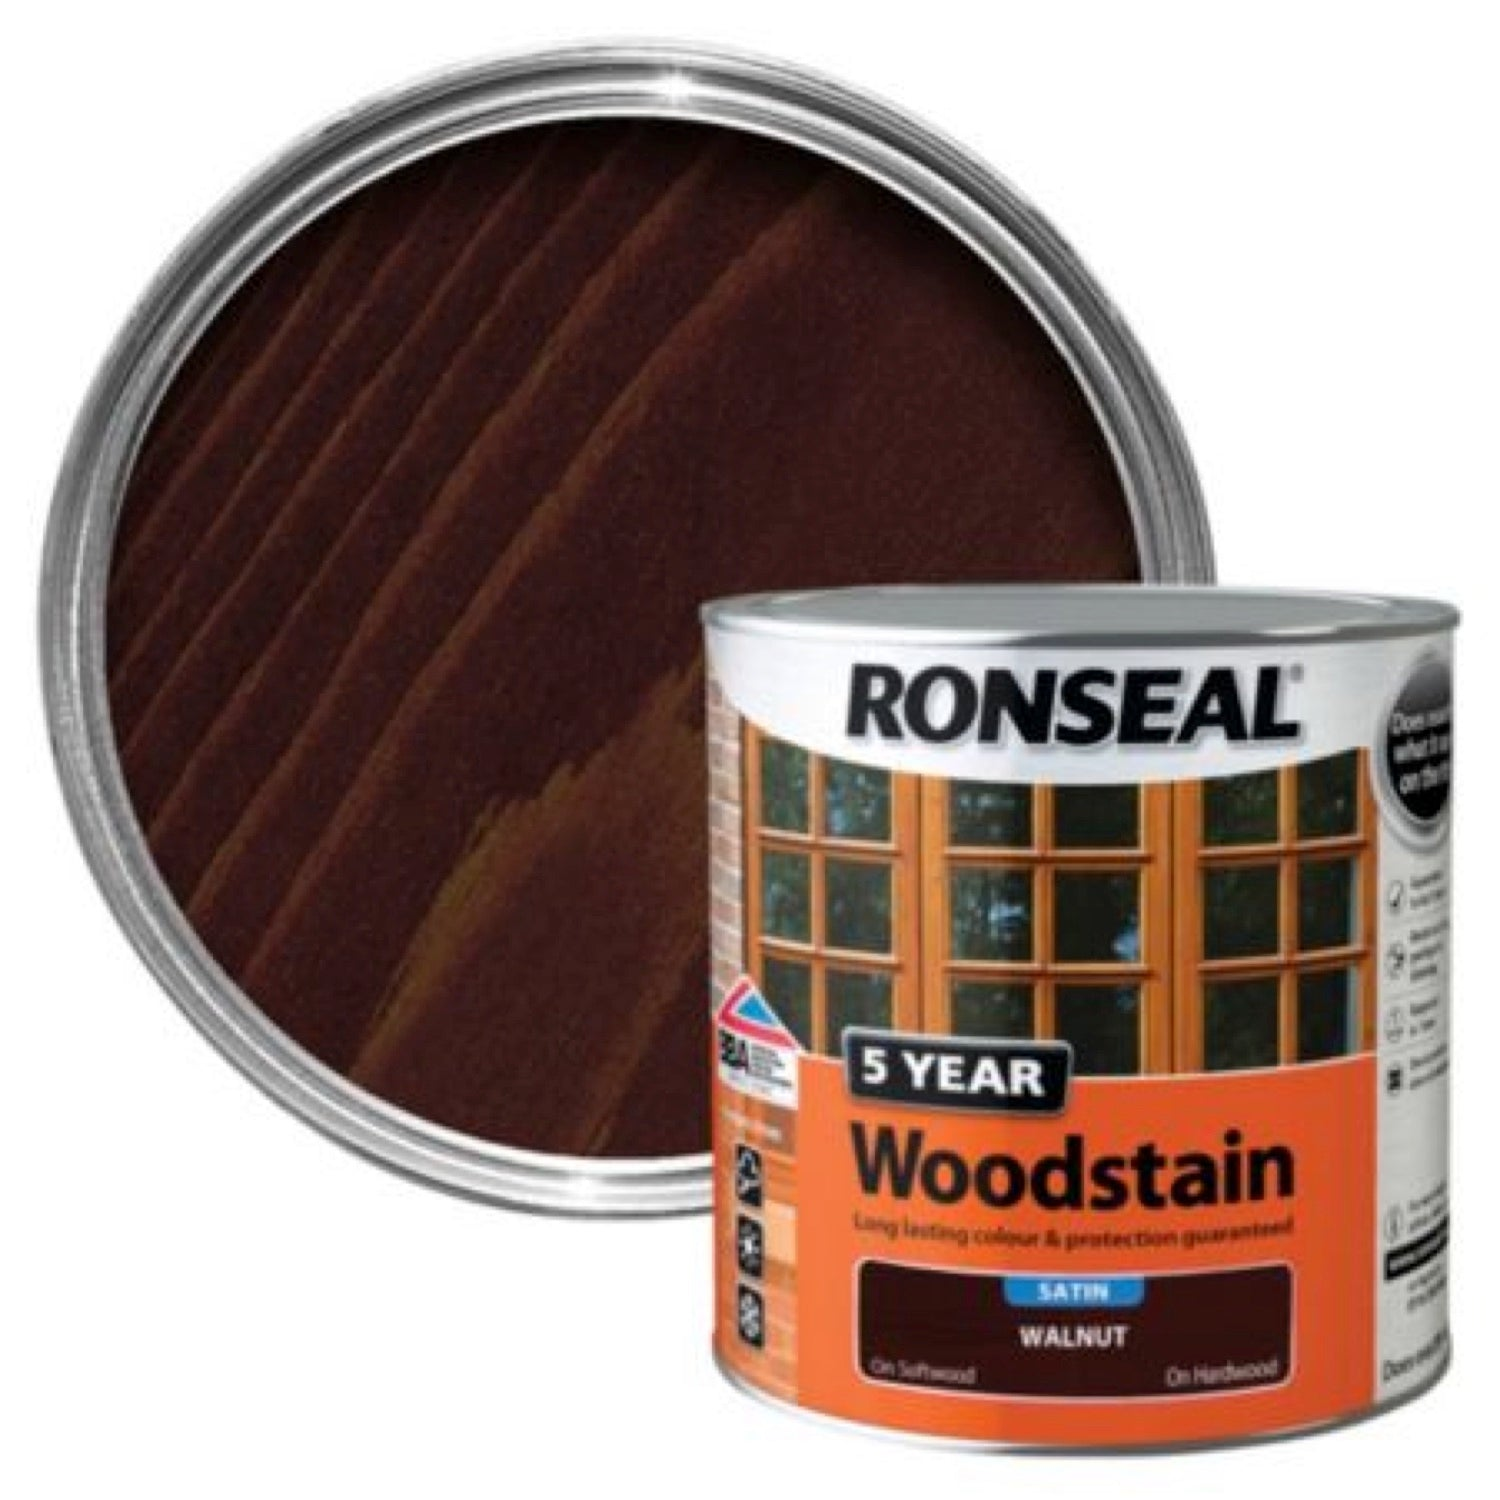 Ronseal 5Yr Woodstain Walnut 250ml